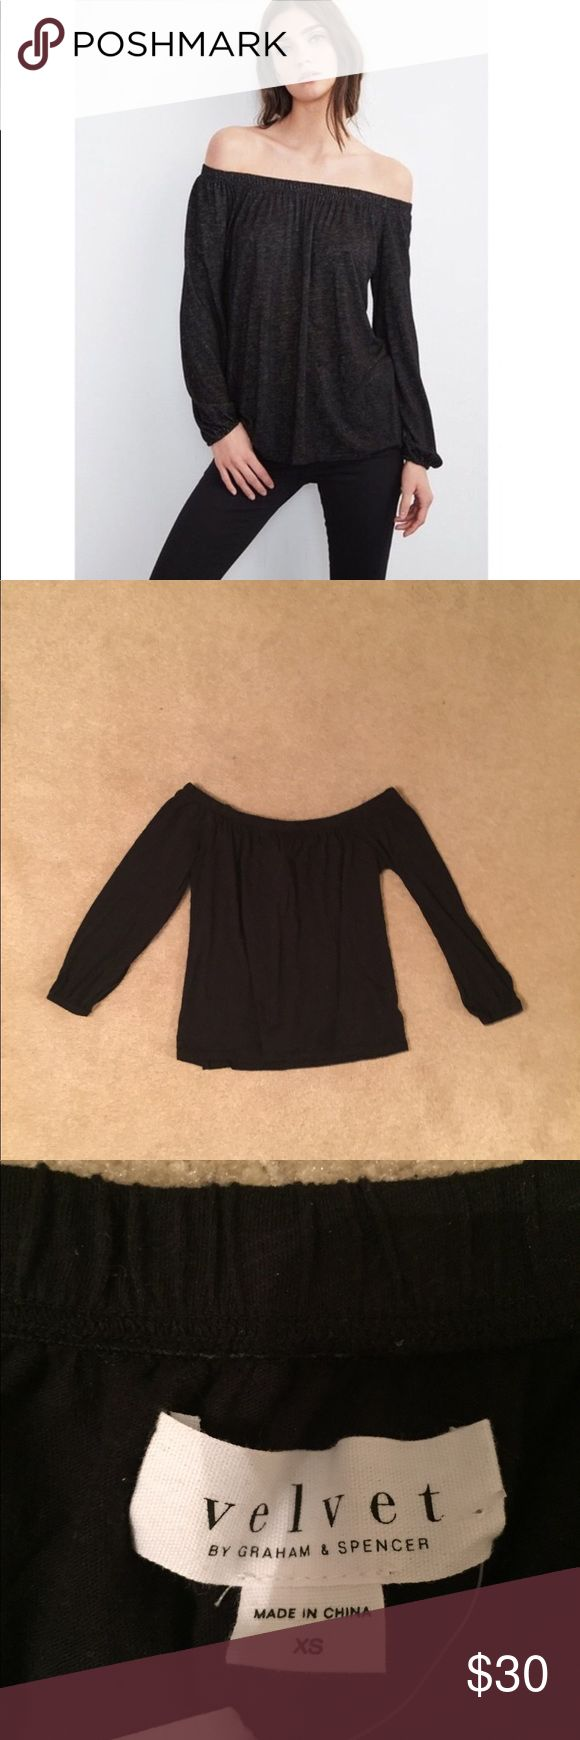 NWT Velvet - Graham & Spencer off the shoulder top NWT. Brand: Velvet by Graham and Spencer. Off the shoulder. Elastic gathered cuff. Size XS. Velvet by Graham & Spencer Tops